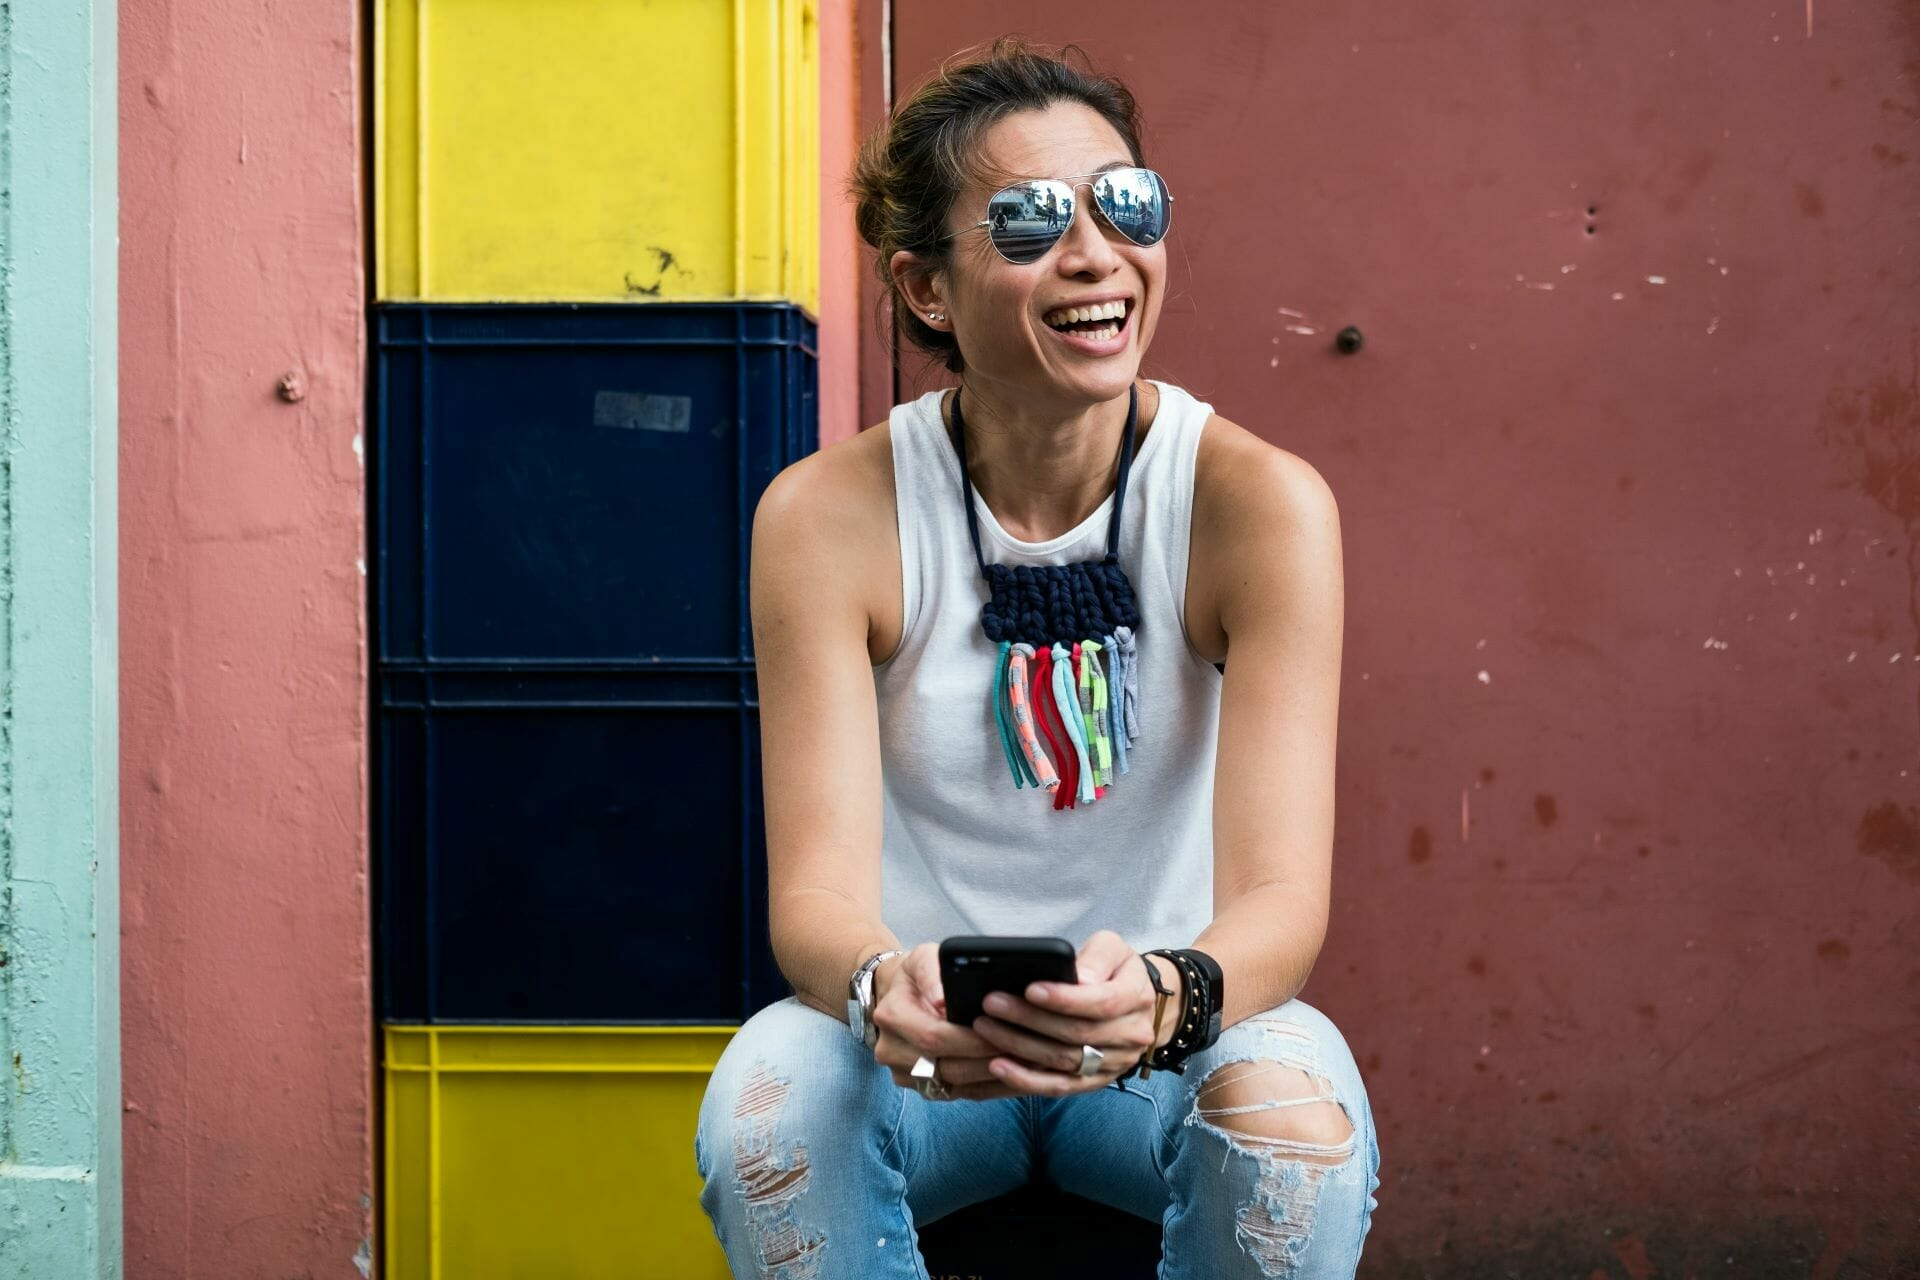 How to Not Care What Others Think: 7 Honest Tips via @allamericanatlas